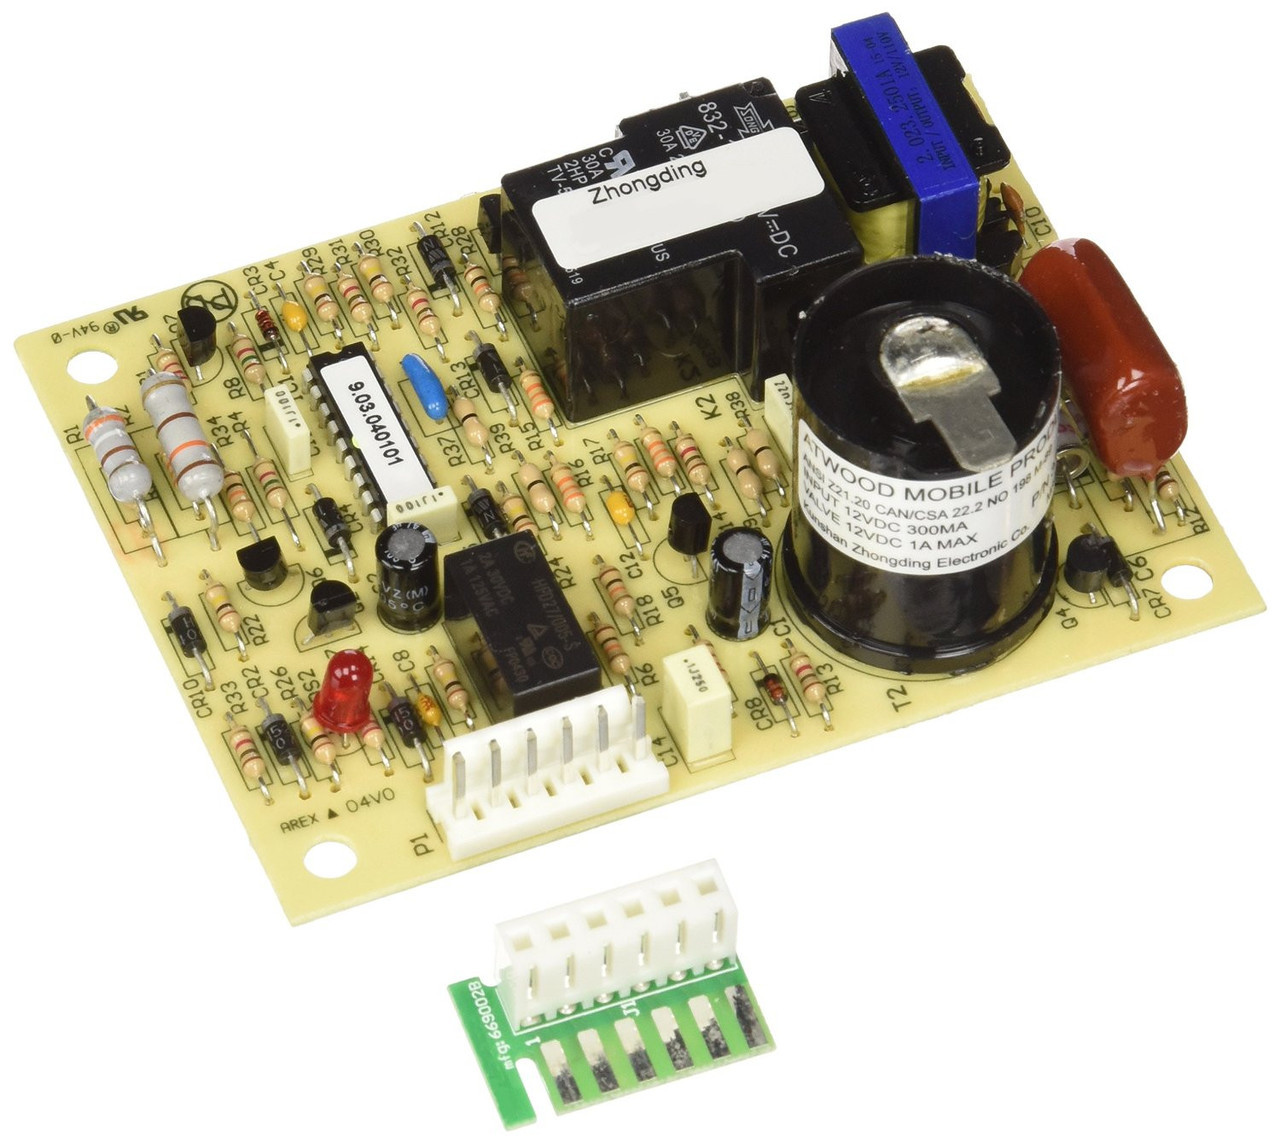 Atwood Furnace Relay Excalibur Wiring Diagram Hydroflame Ignition Control Board And Adapter 1280x1143